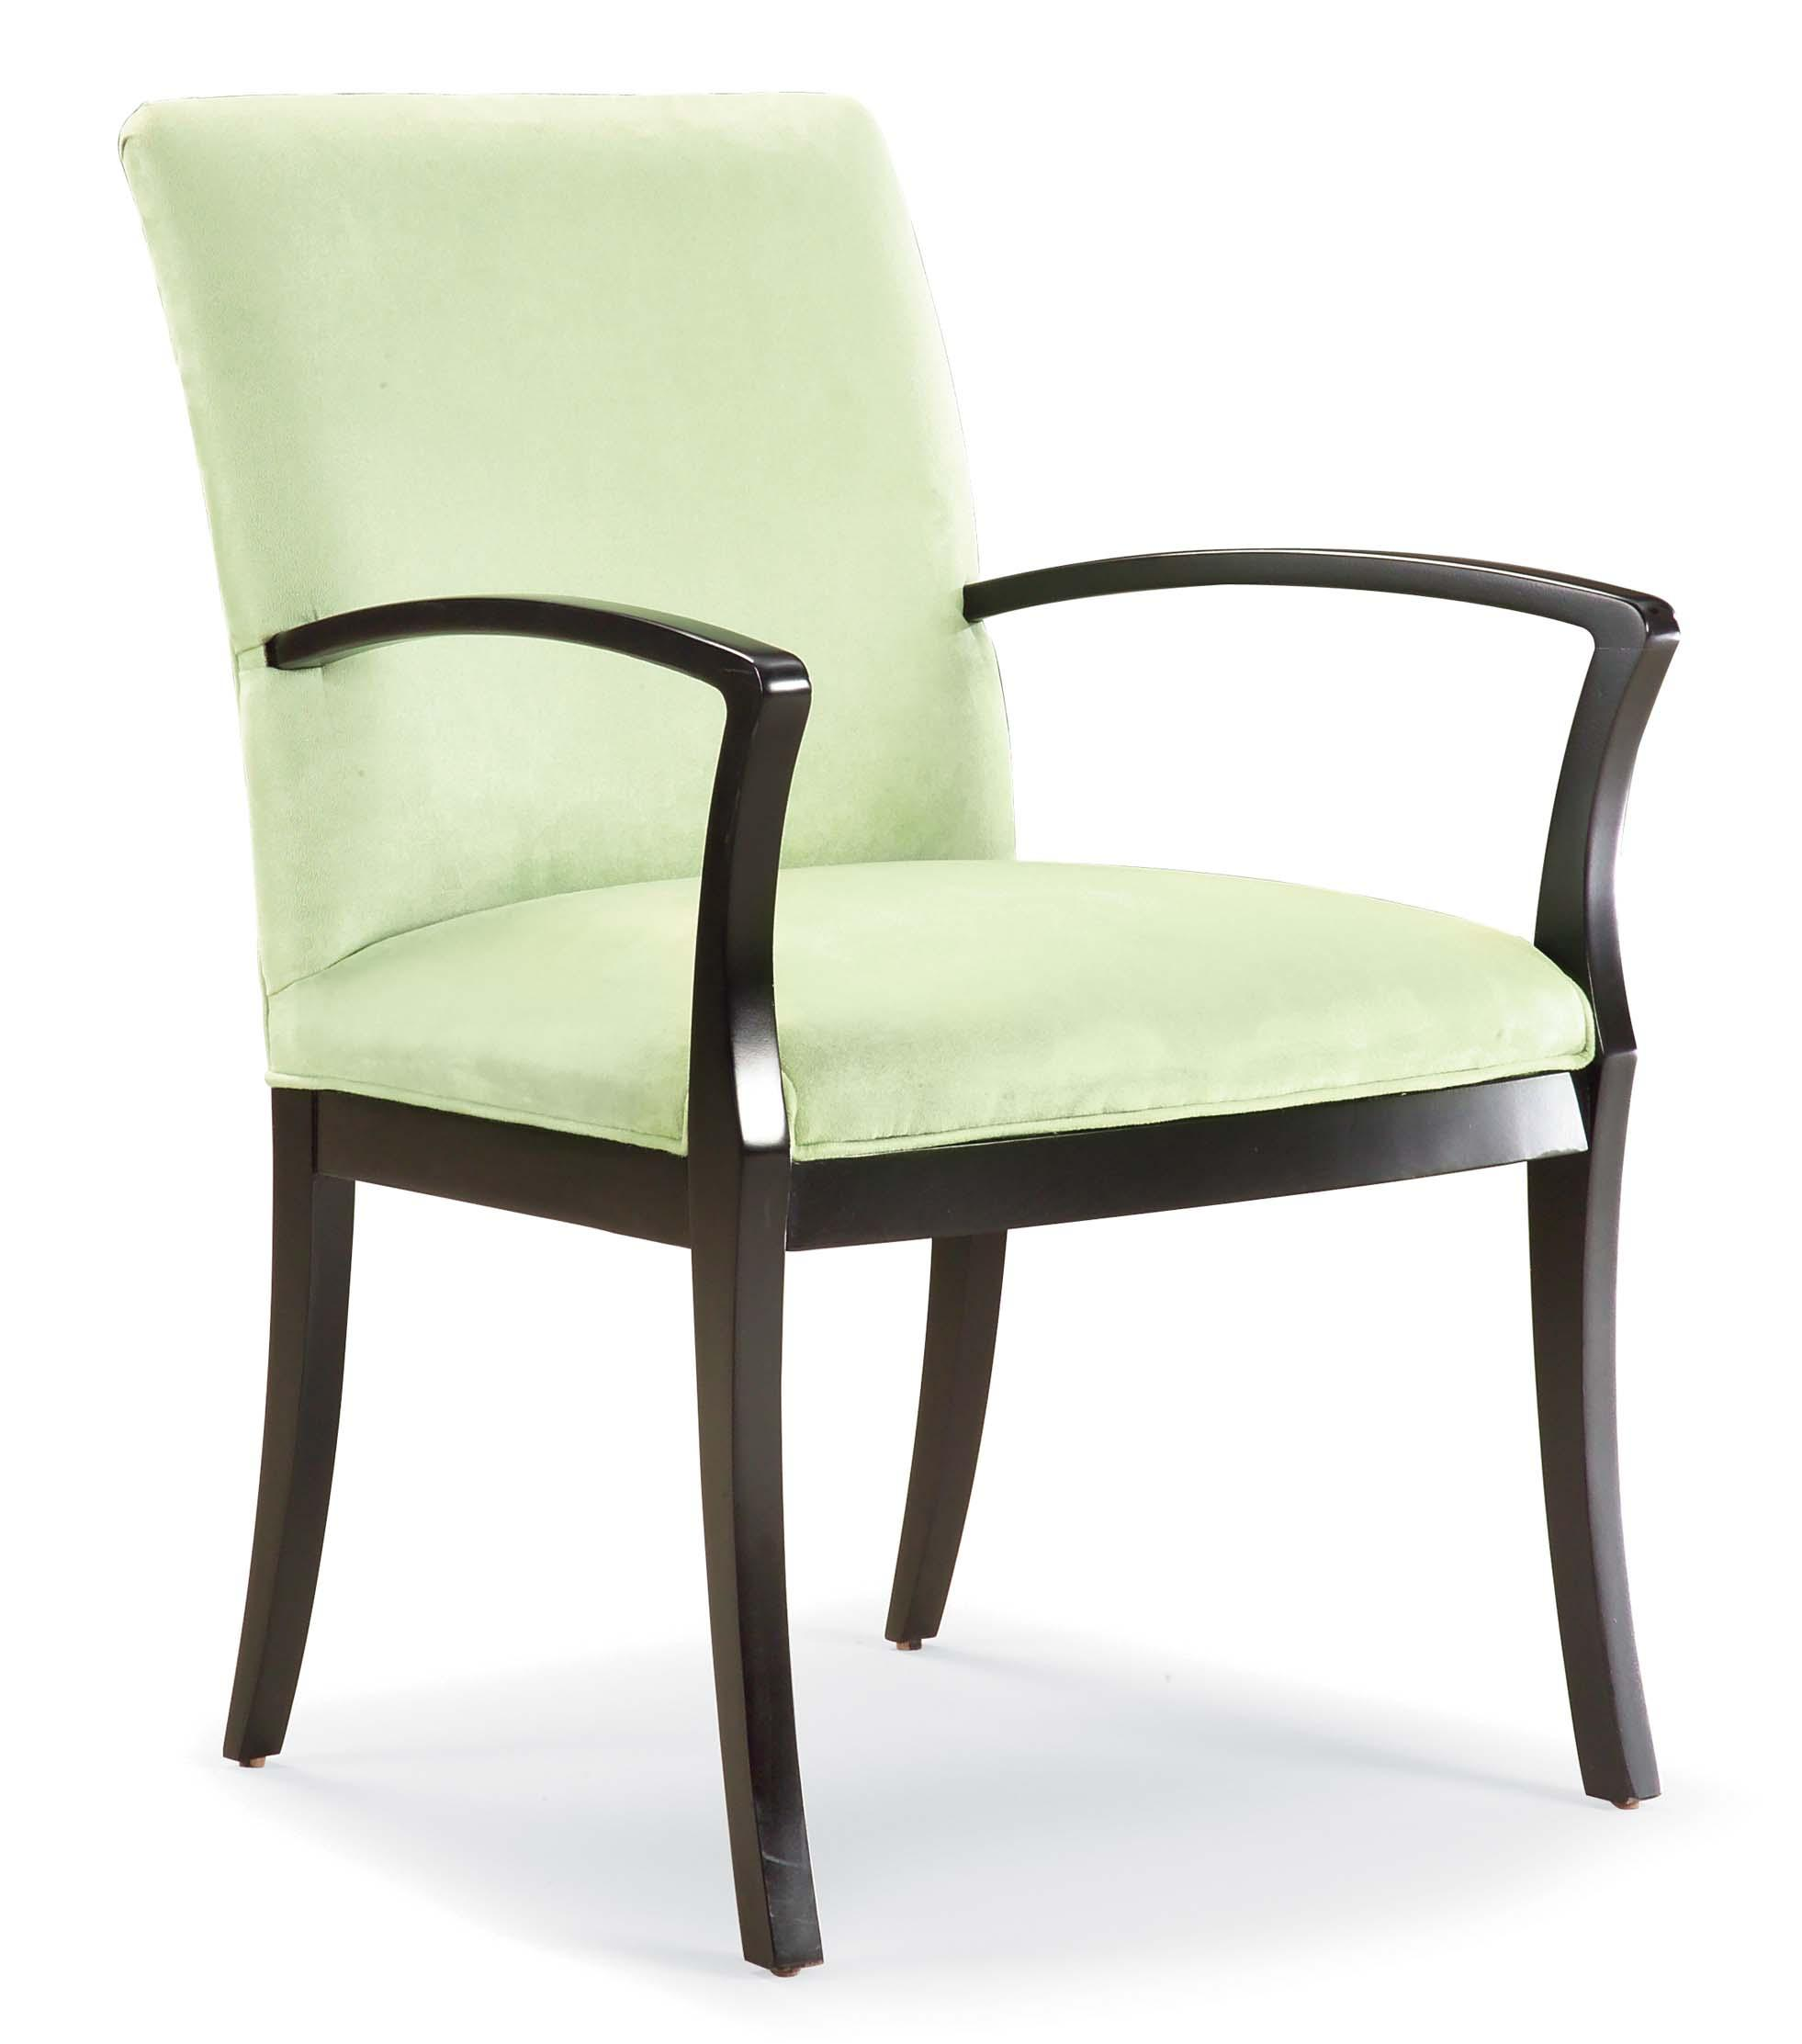 Fairfield Chairs Exposed Wood Chair - Item Number: 6008-01